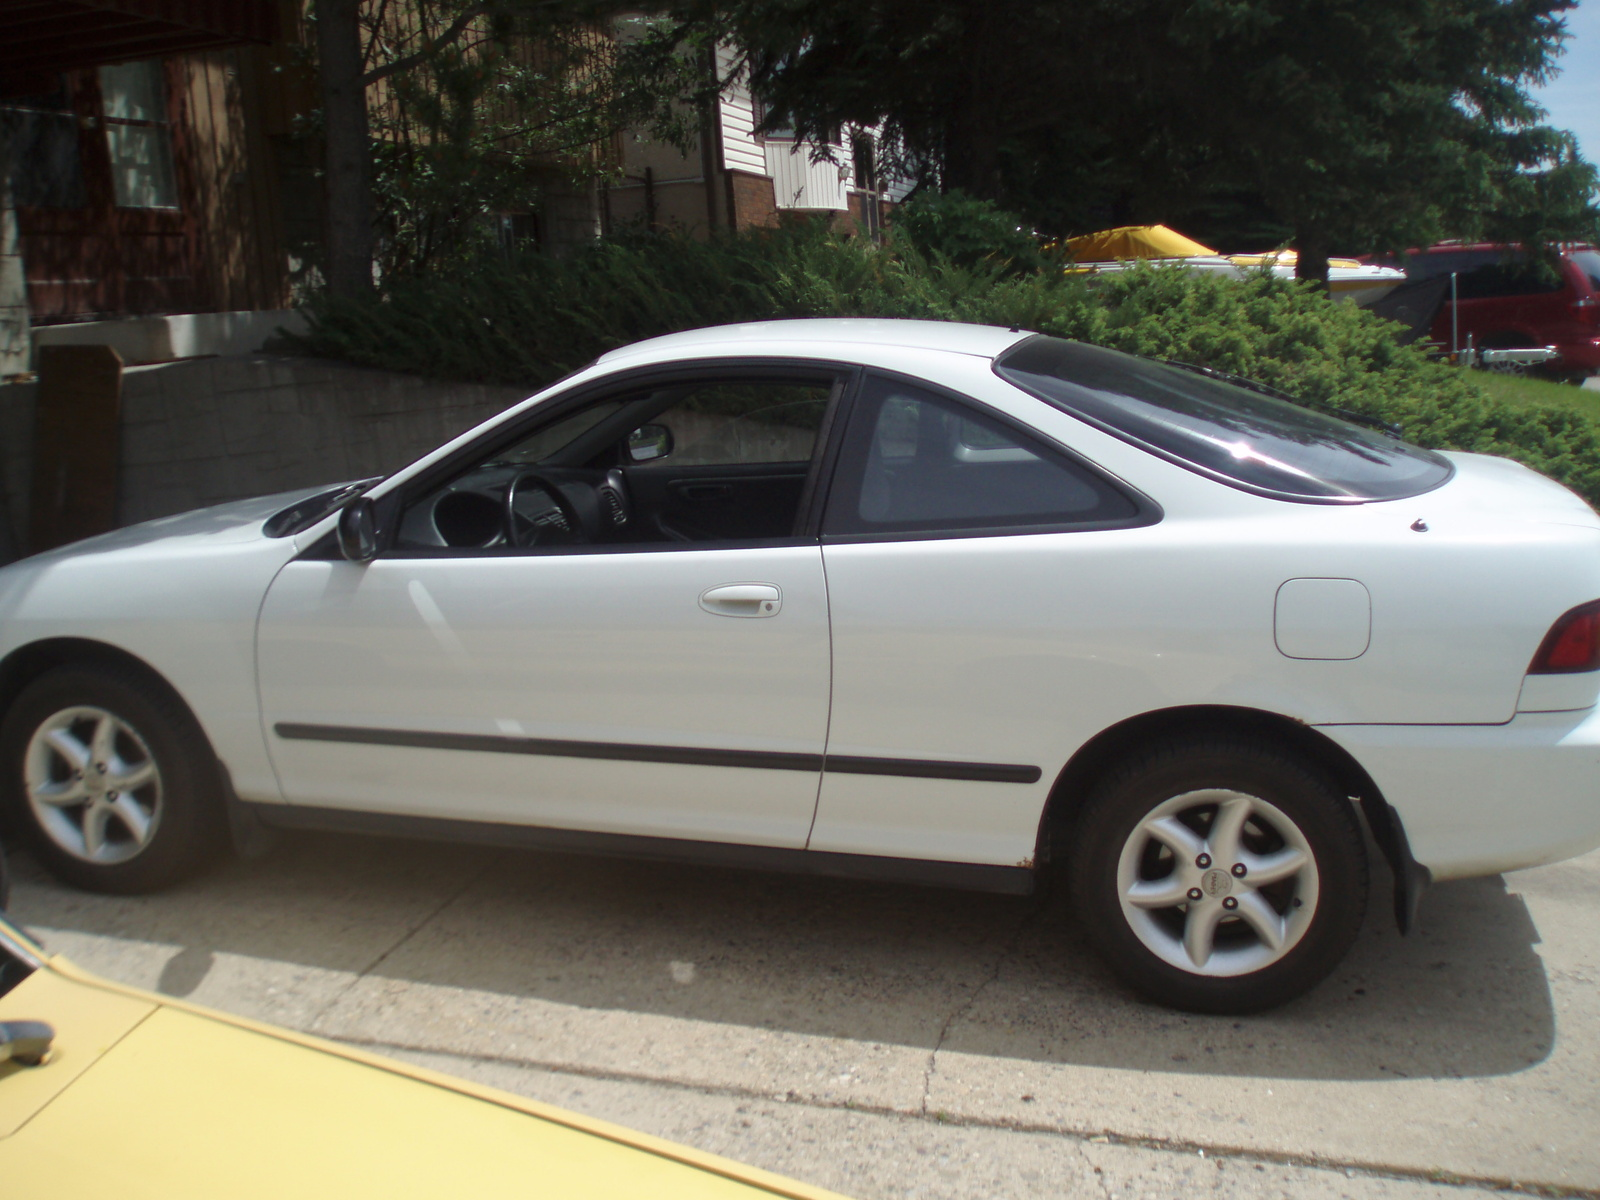 1997 honda accord models with 1994 Acura Integra Pictures C1111 Pi19896875 on Video check out the new 2008 h additionally 1991 Volkswagen Passat Pictures C5954 additionally 1998 additionally 1994 Acura Integra Pictures C1111 pi19896875 additionally 1994 Acura Integra Pictures C1111 pi10590117.